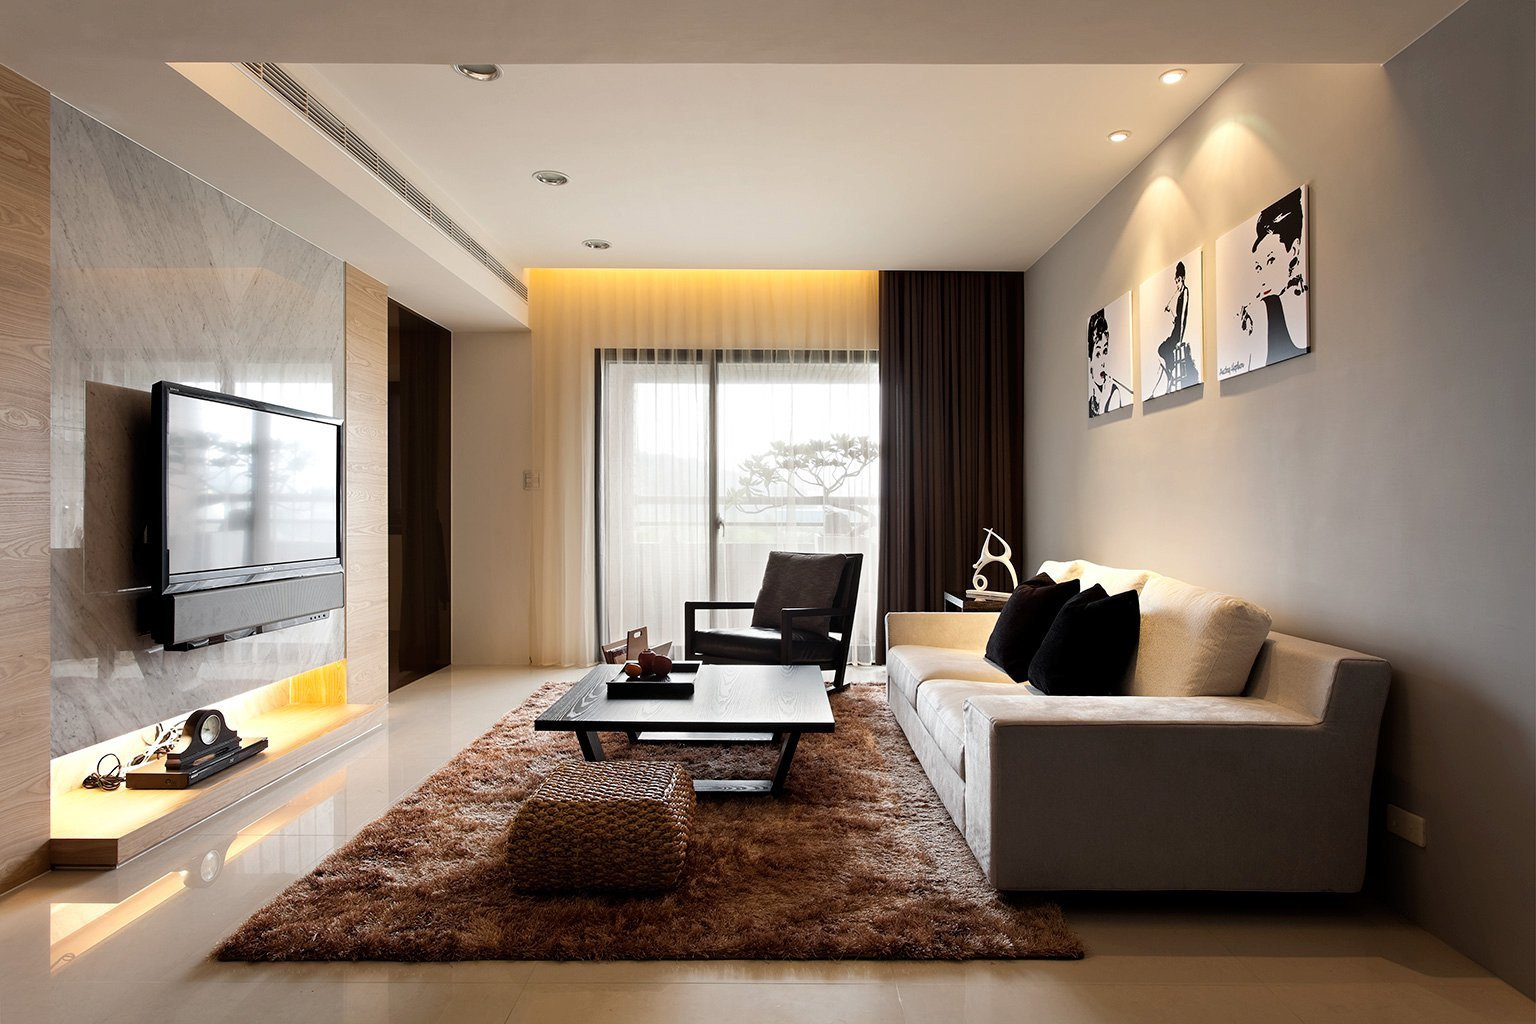 Contemporary Living Room Decorating Ideas Fresh Modern Minimalist Decor with A Homey Flow